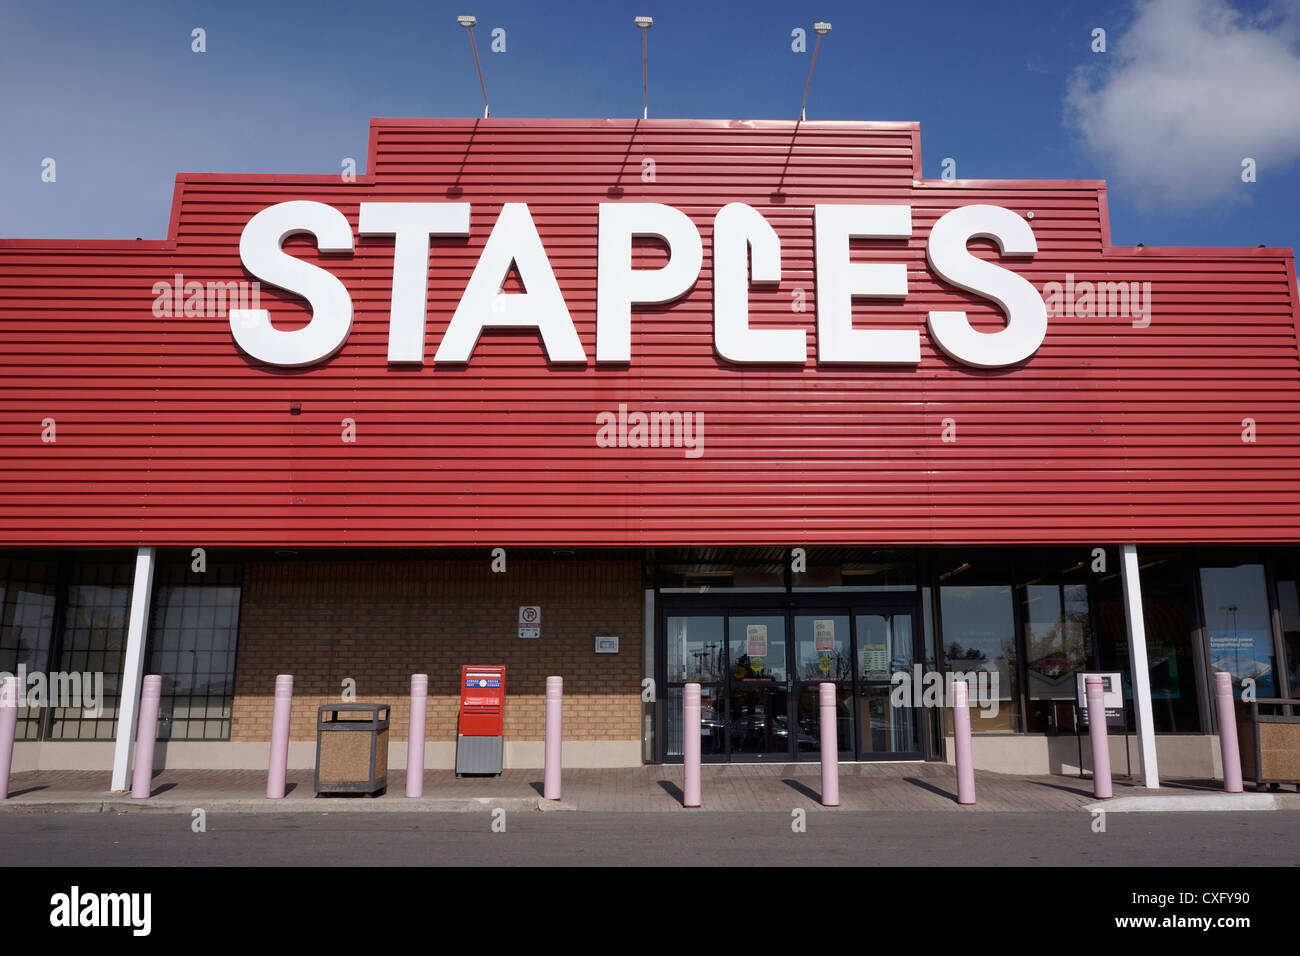 Staples A.k.a Staples Business Depot, Office Supplies Store   Stock Image